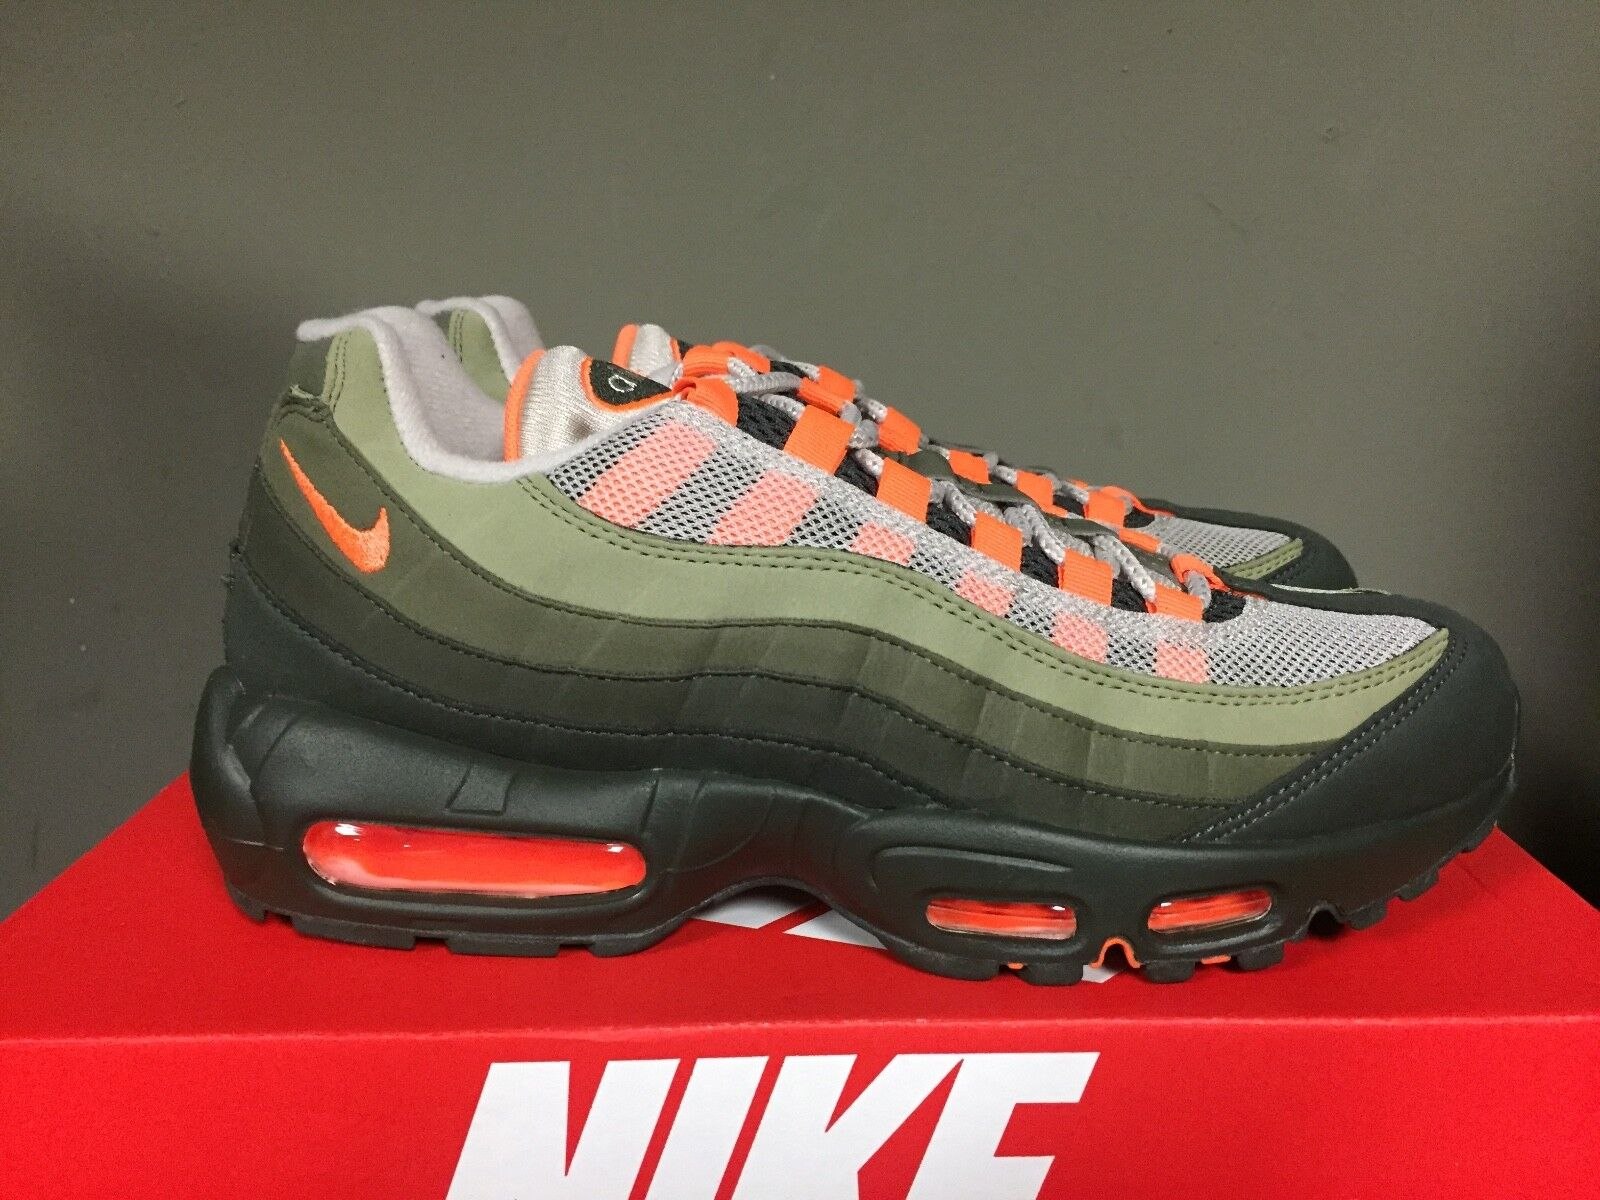 NIKE AIR MAX 95 OG STRING/TOTAL ORANGE-NEUTRAL OLIVE AT2865-200 NEW 2018